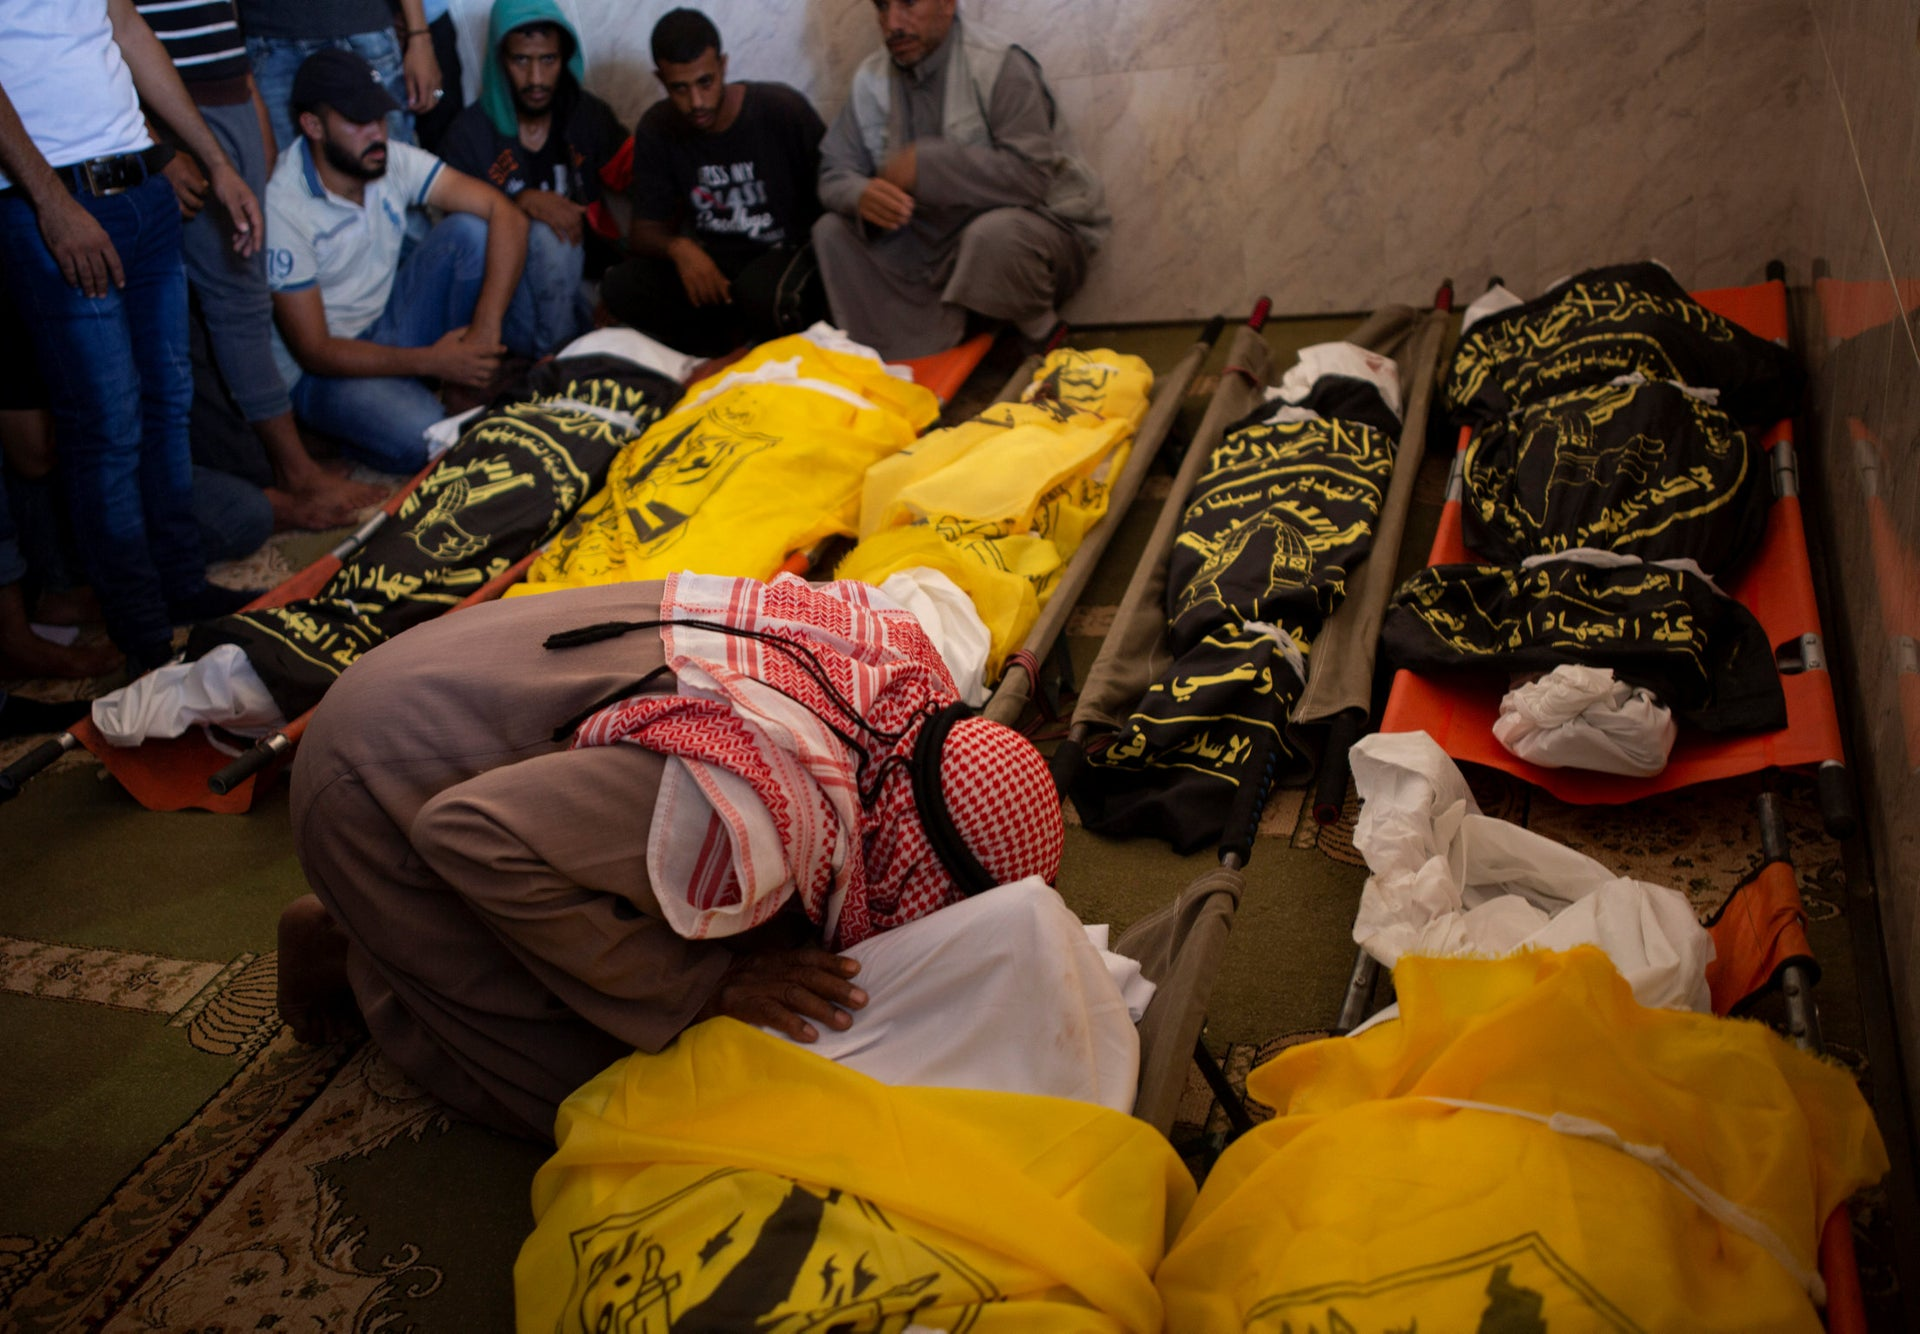 A funeral for members of the Sawarka family killed in overnight Israeli missile strikes that targeted their house, the town of Dir al-Balah, central Gaza Strip, Nov. 14, 2019.